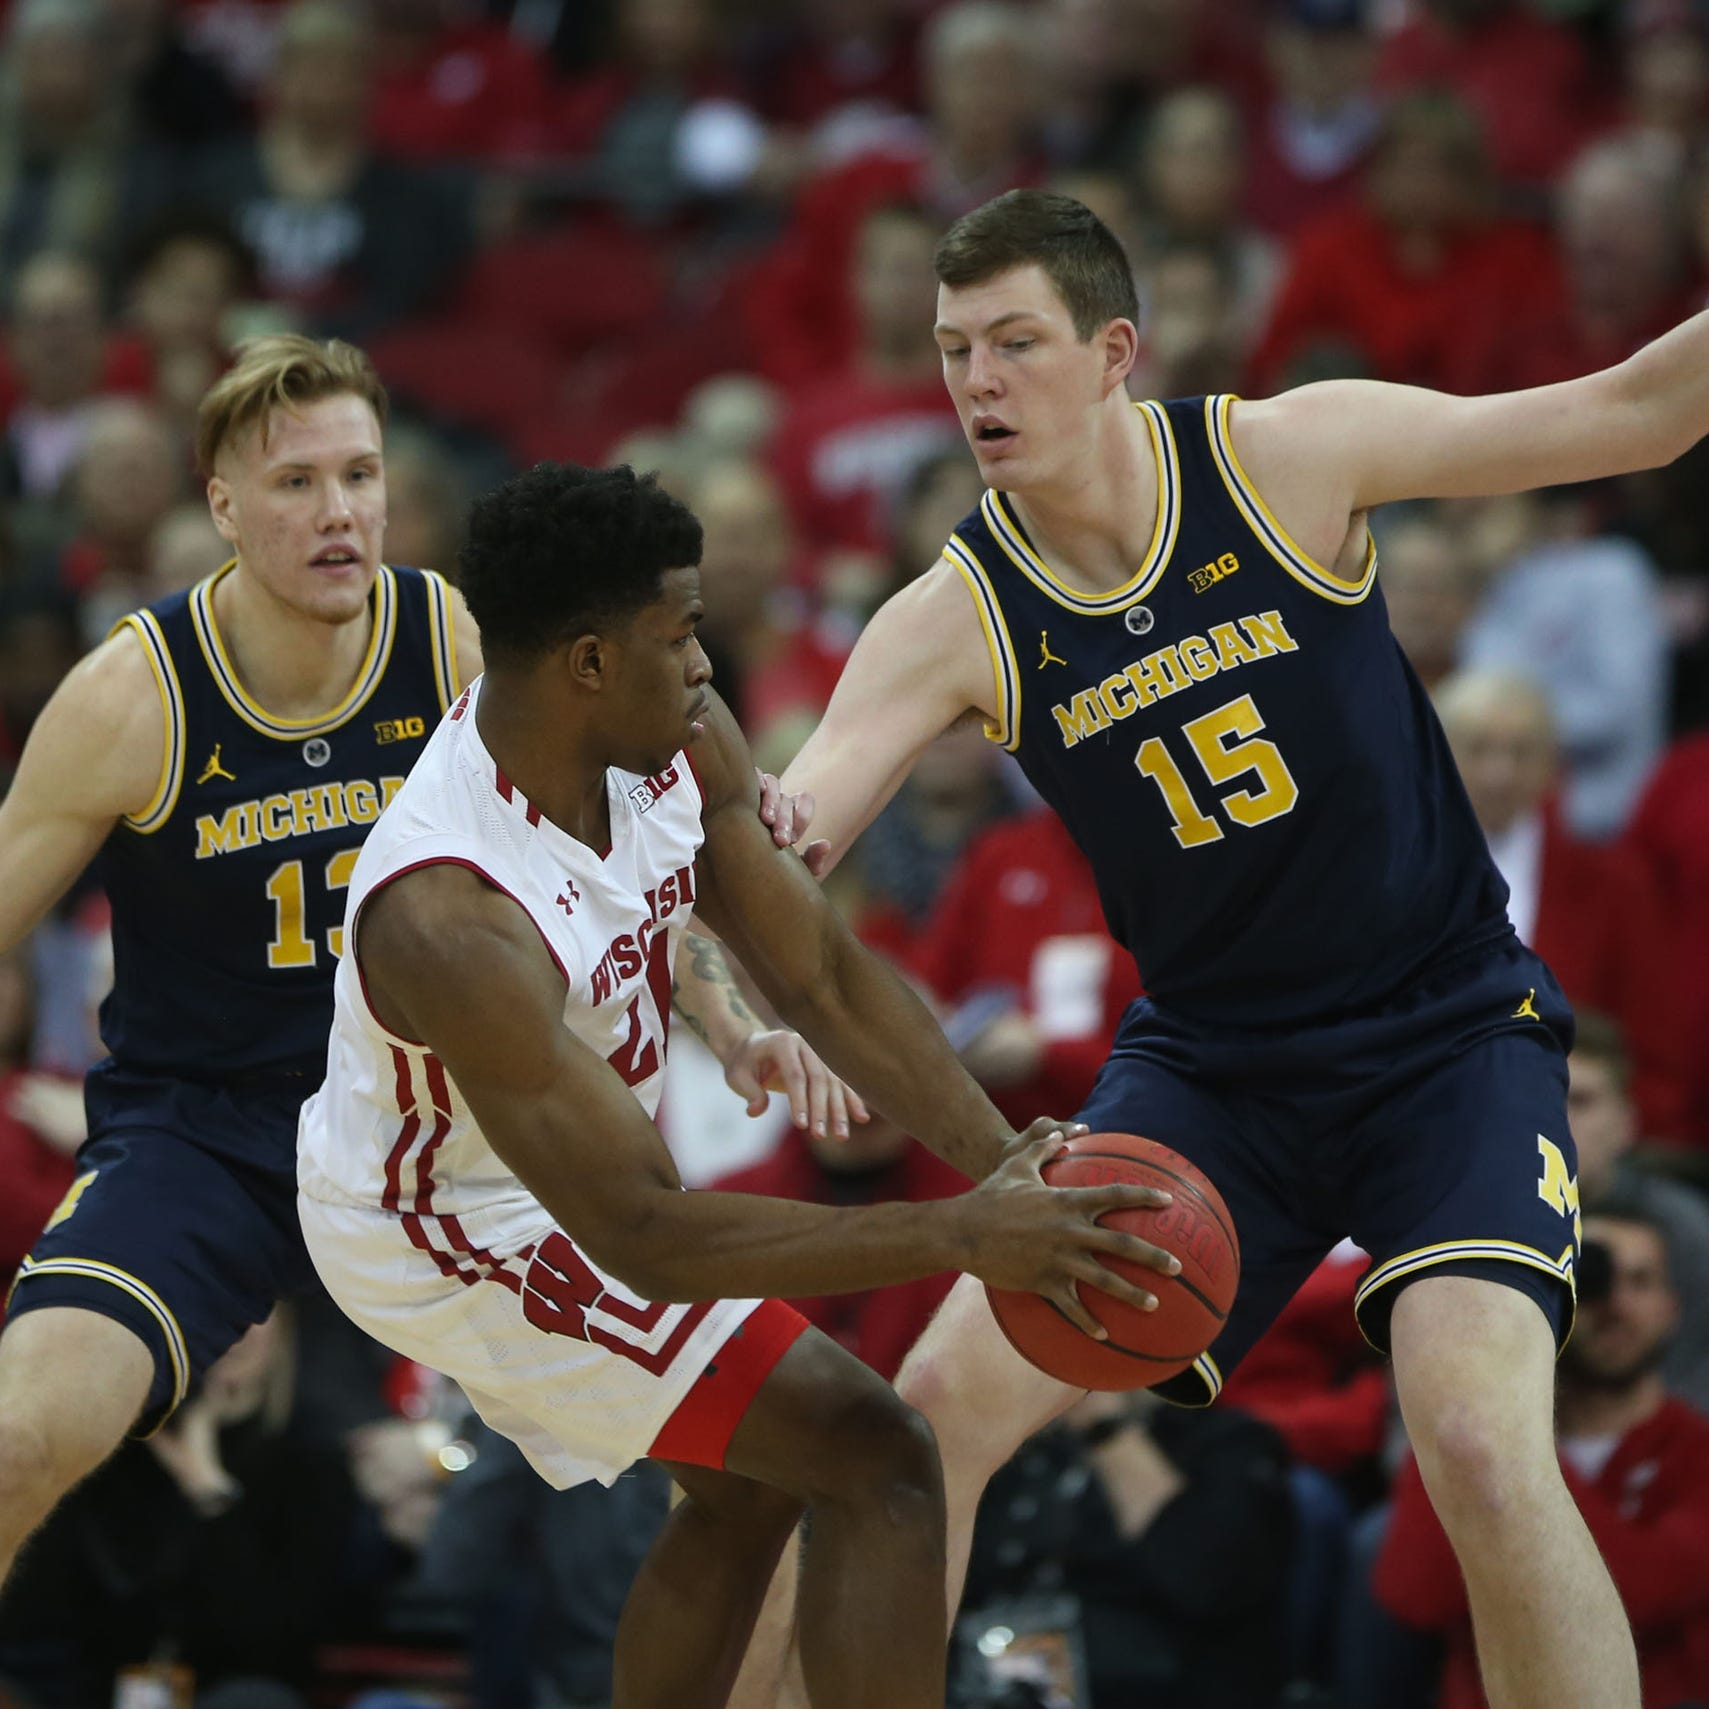 AP Top 25: Michigan basketball falls to No. 5, Michigan State stays No. 6